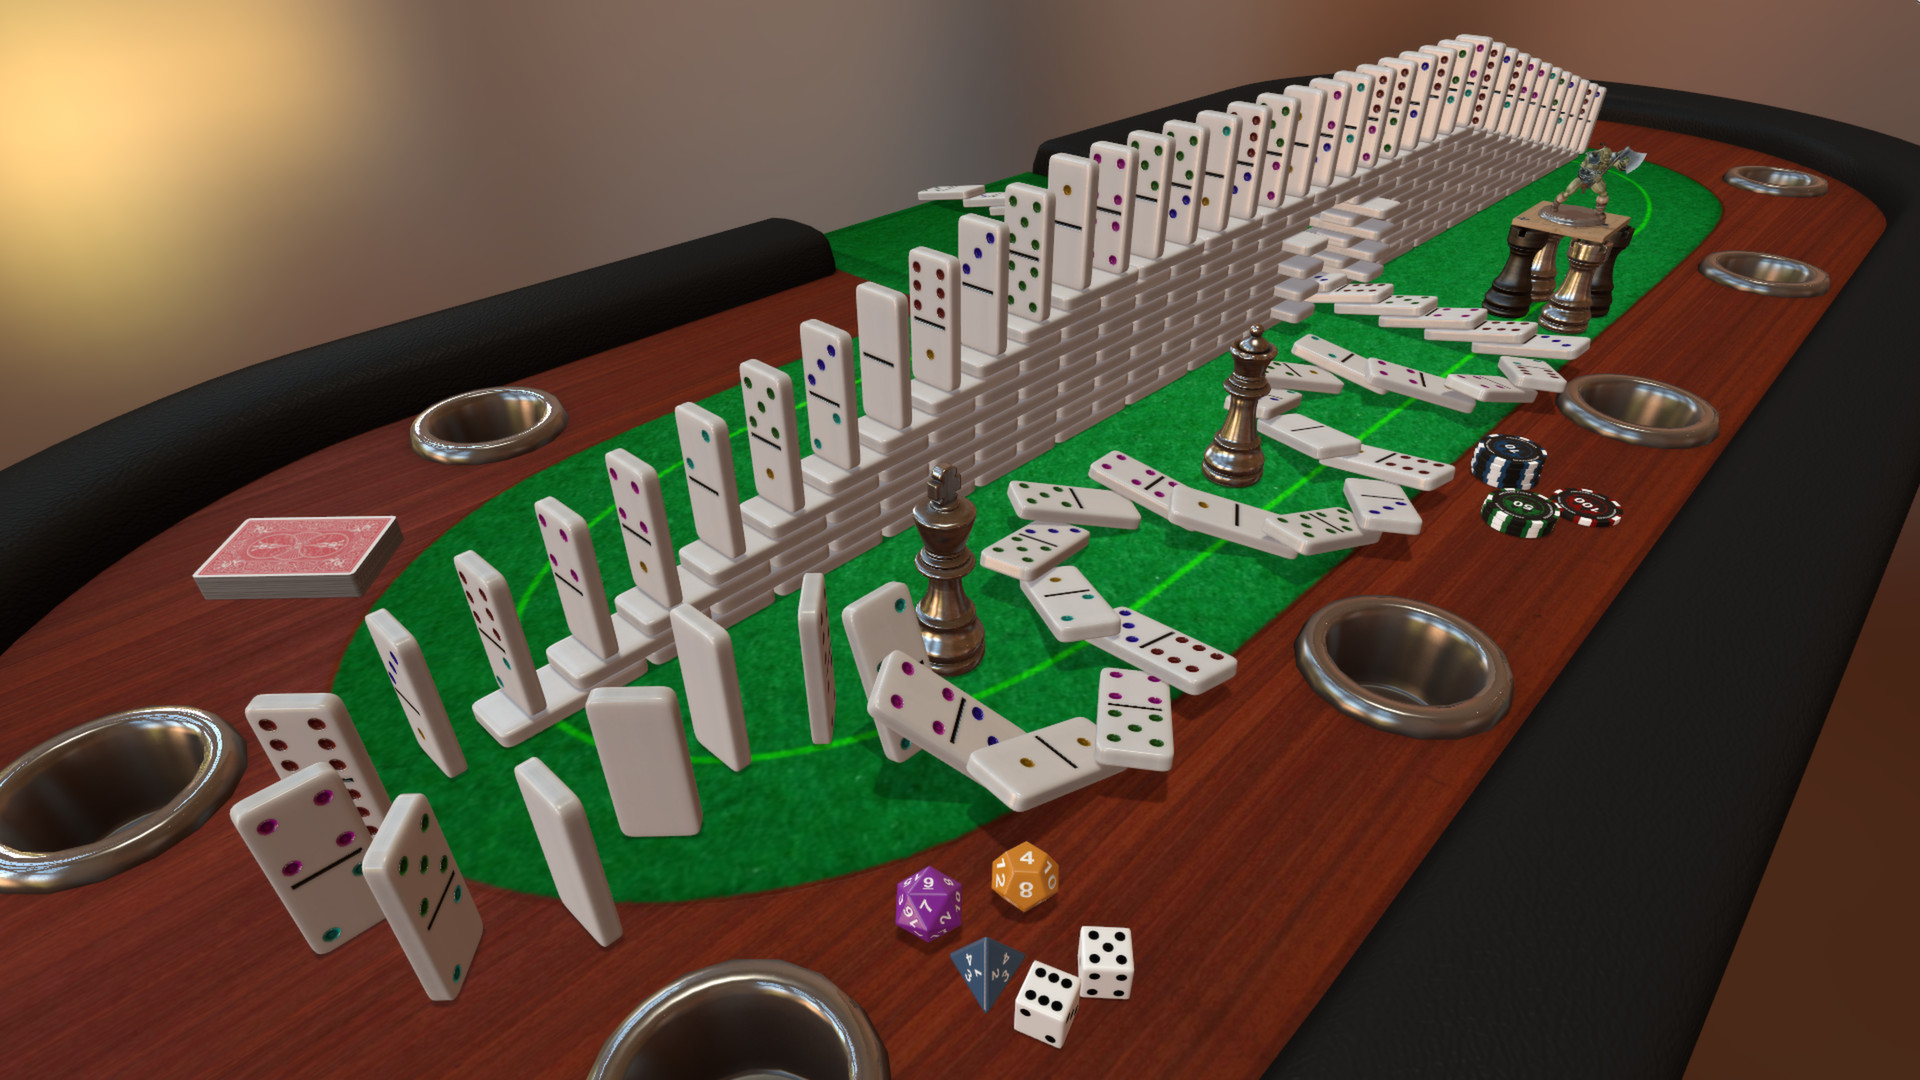 Save 50 On Tabletop Simulator Steam 10 Online Design Simulation Tools For Electrical Electronics